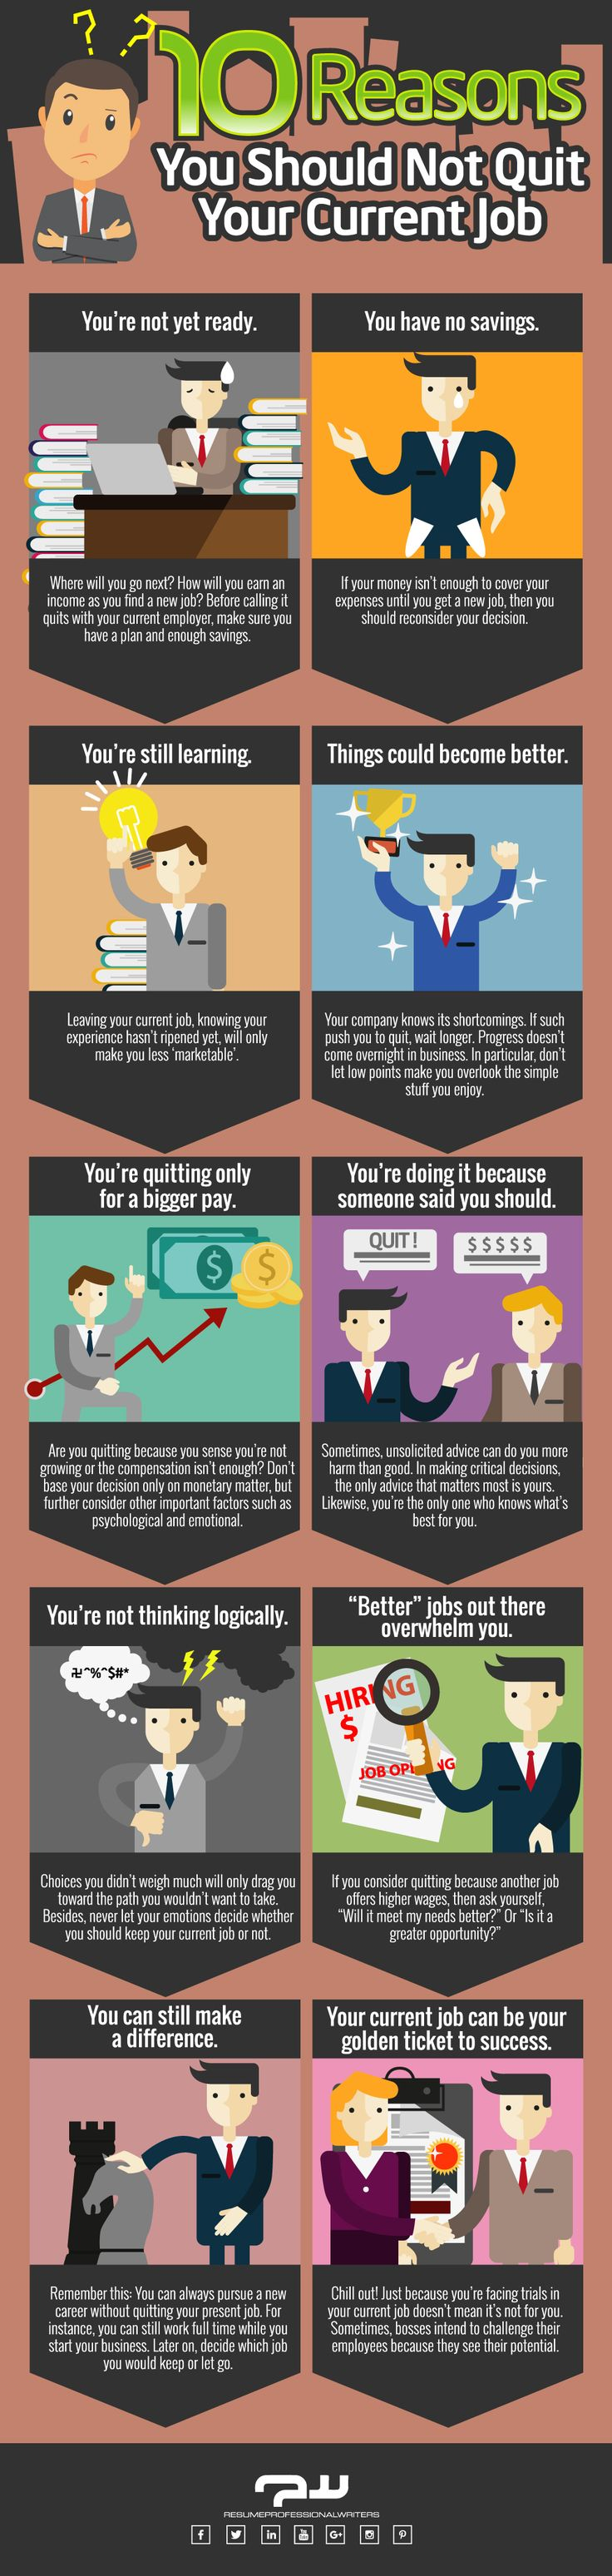 10 Reasons You Should Not Quit Your